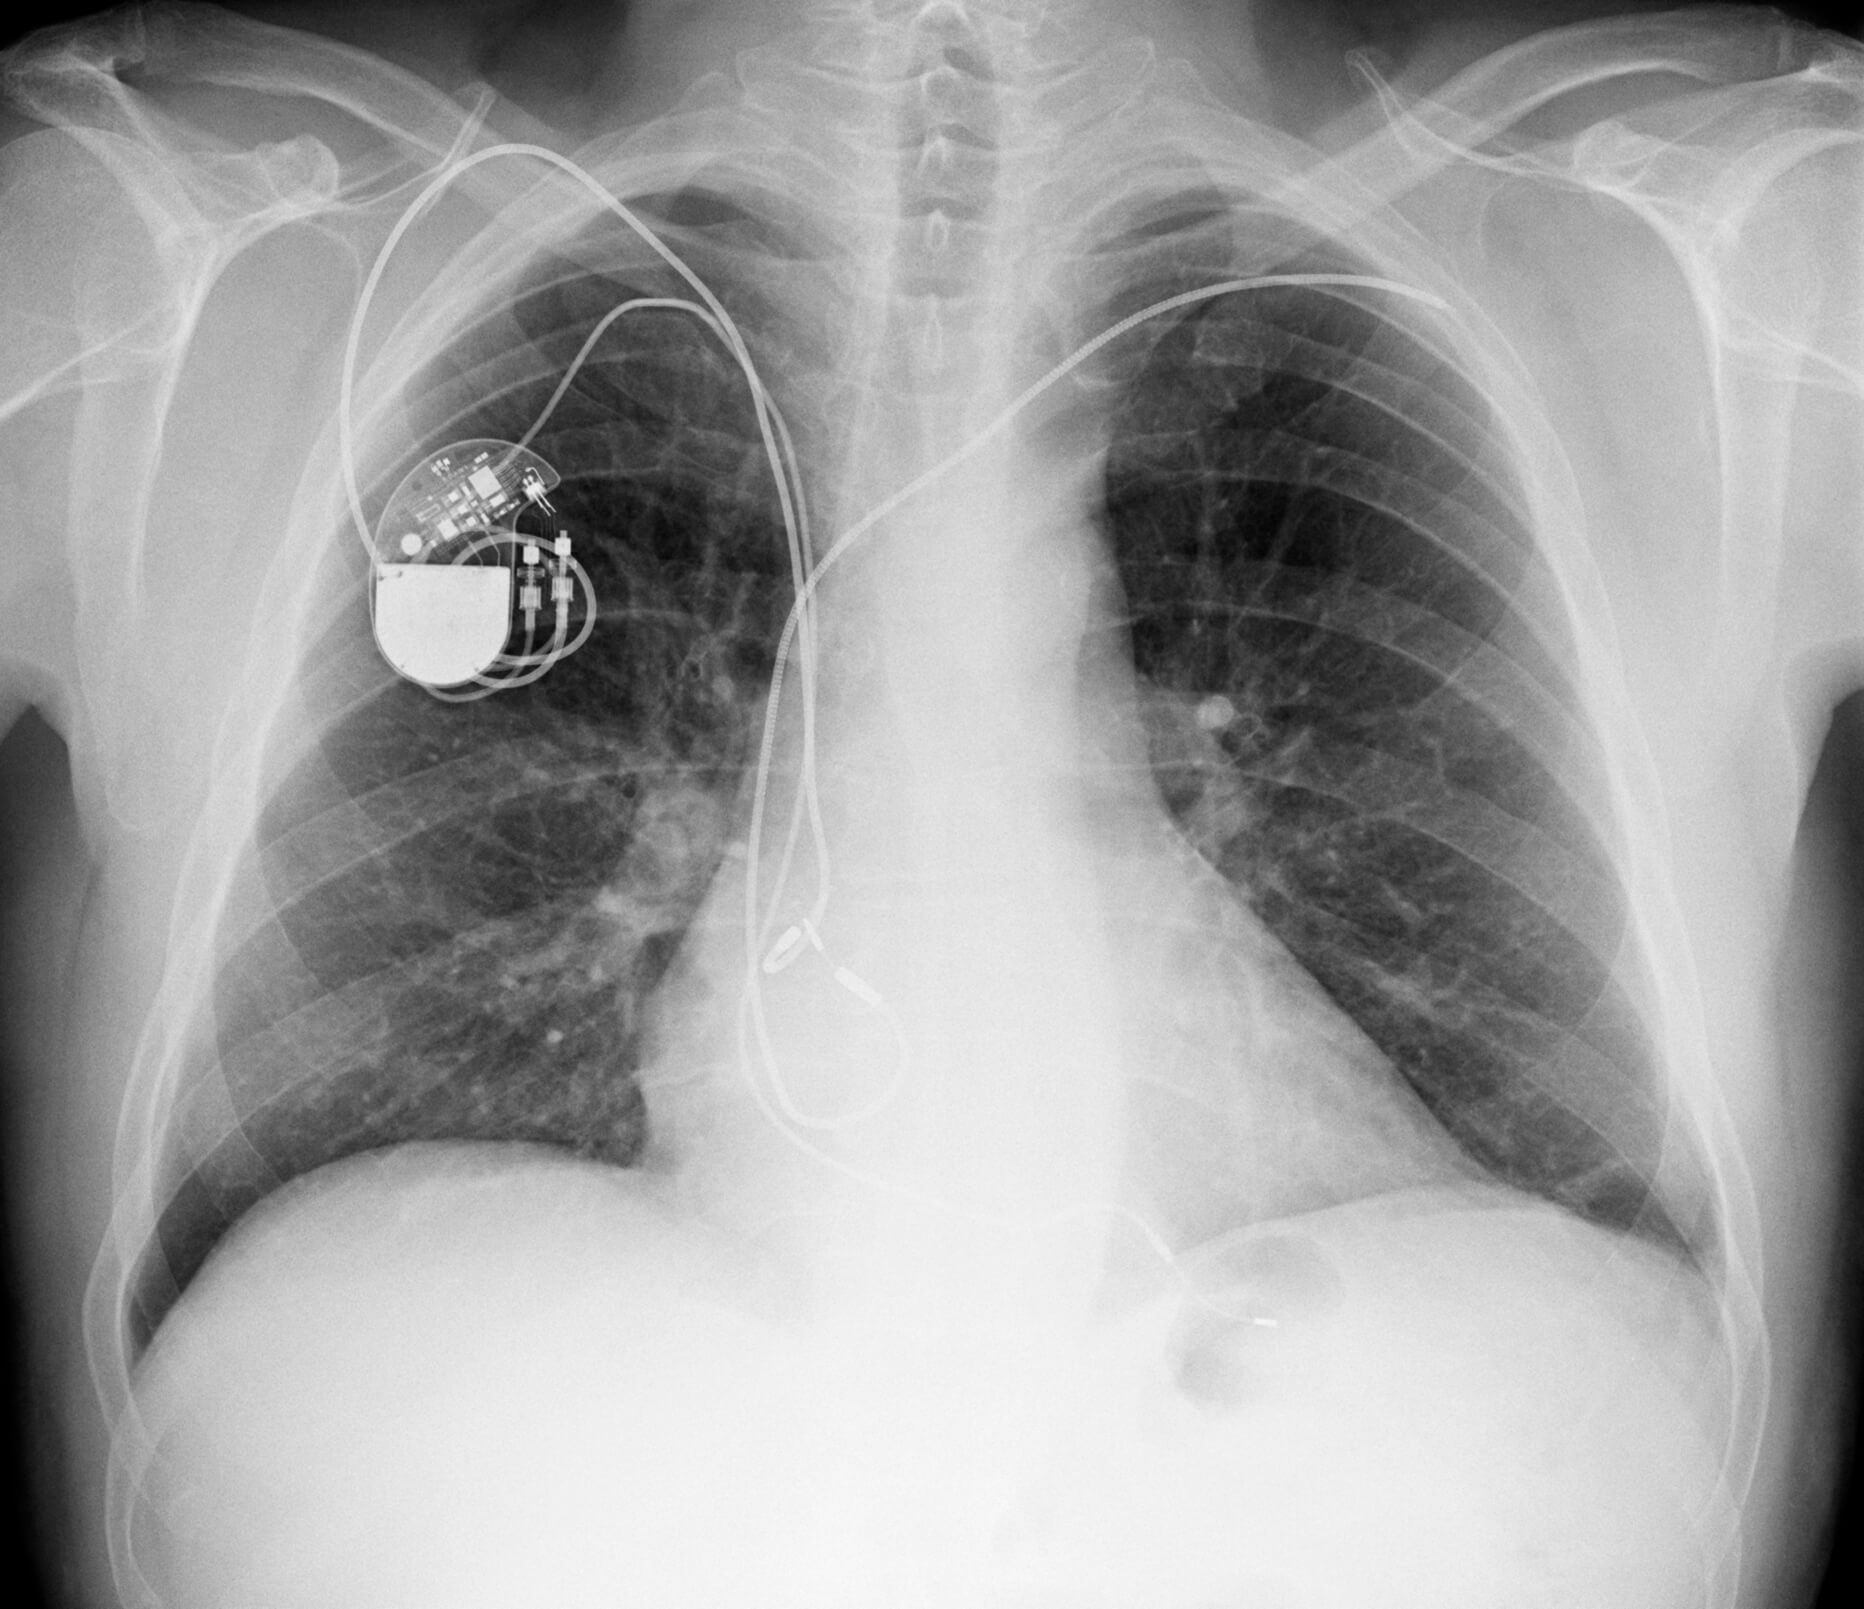 xray of chest with pacemaker